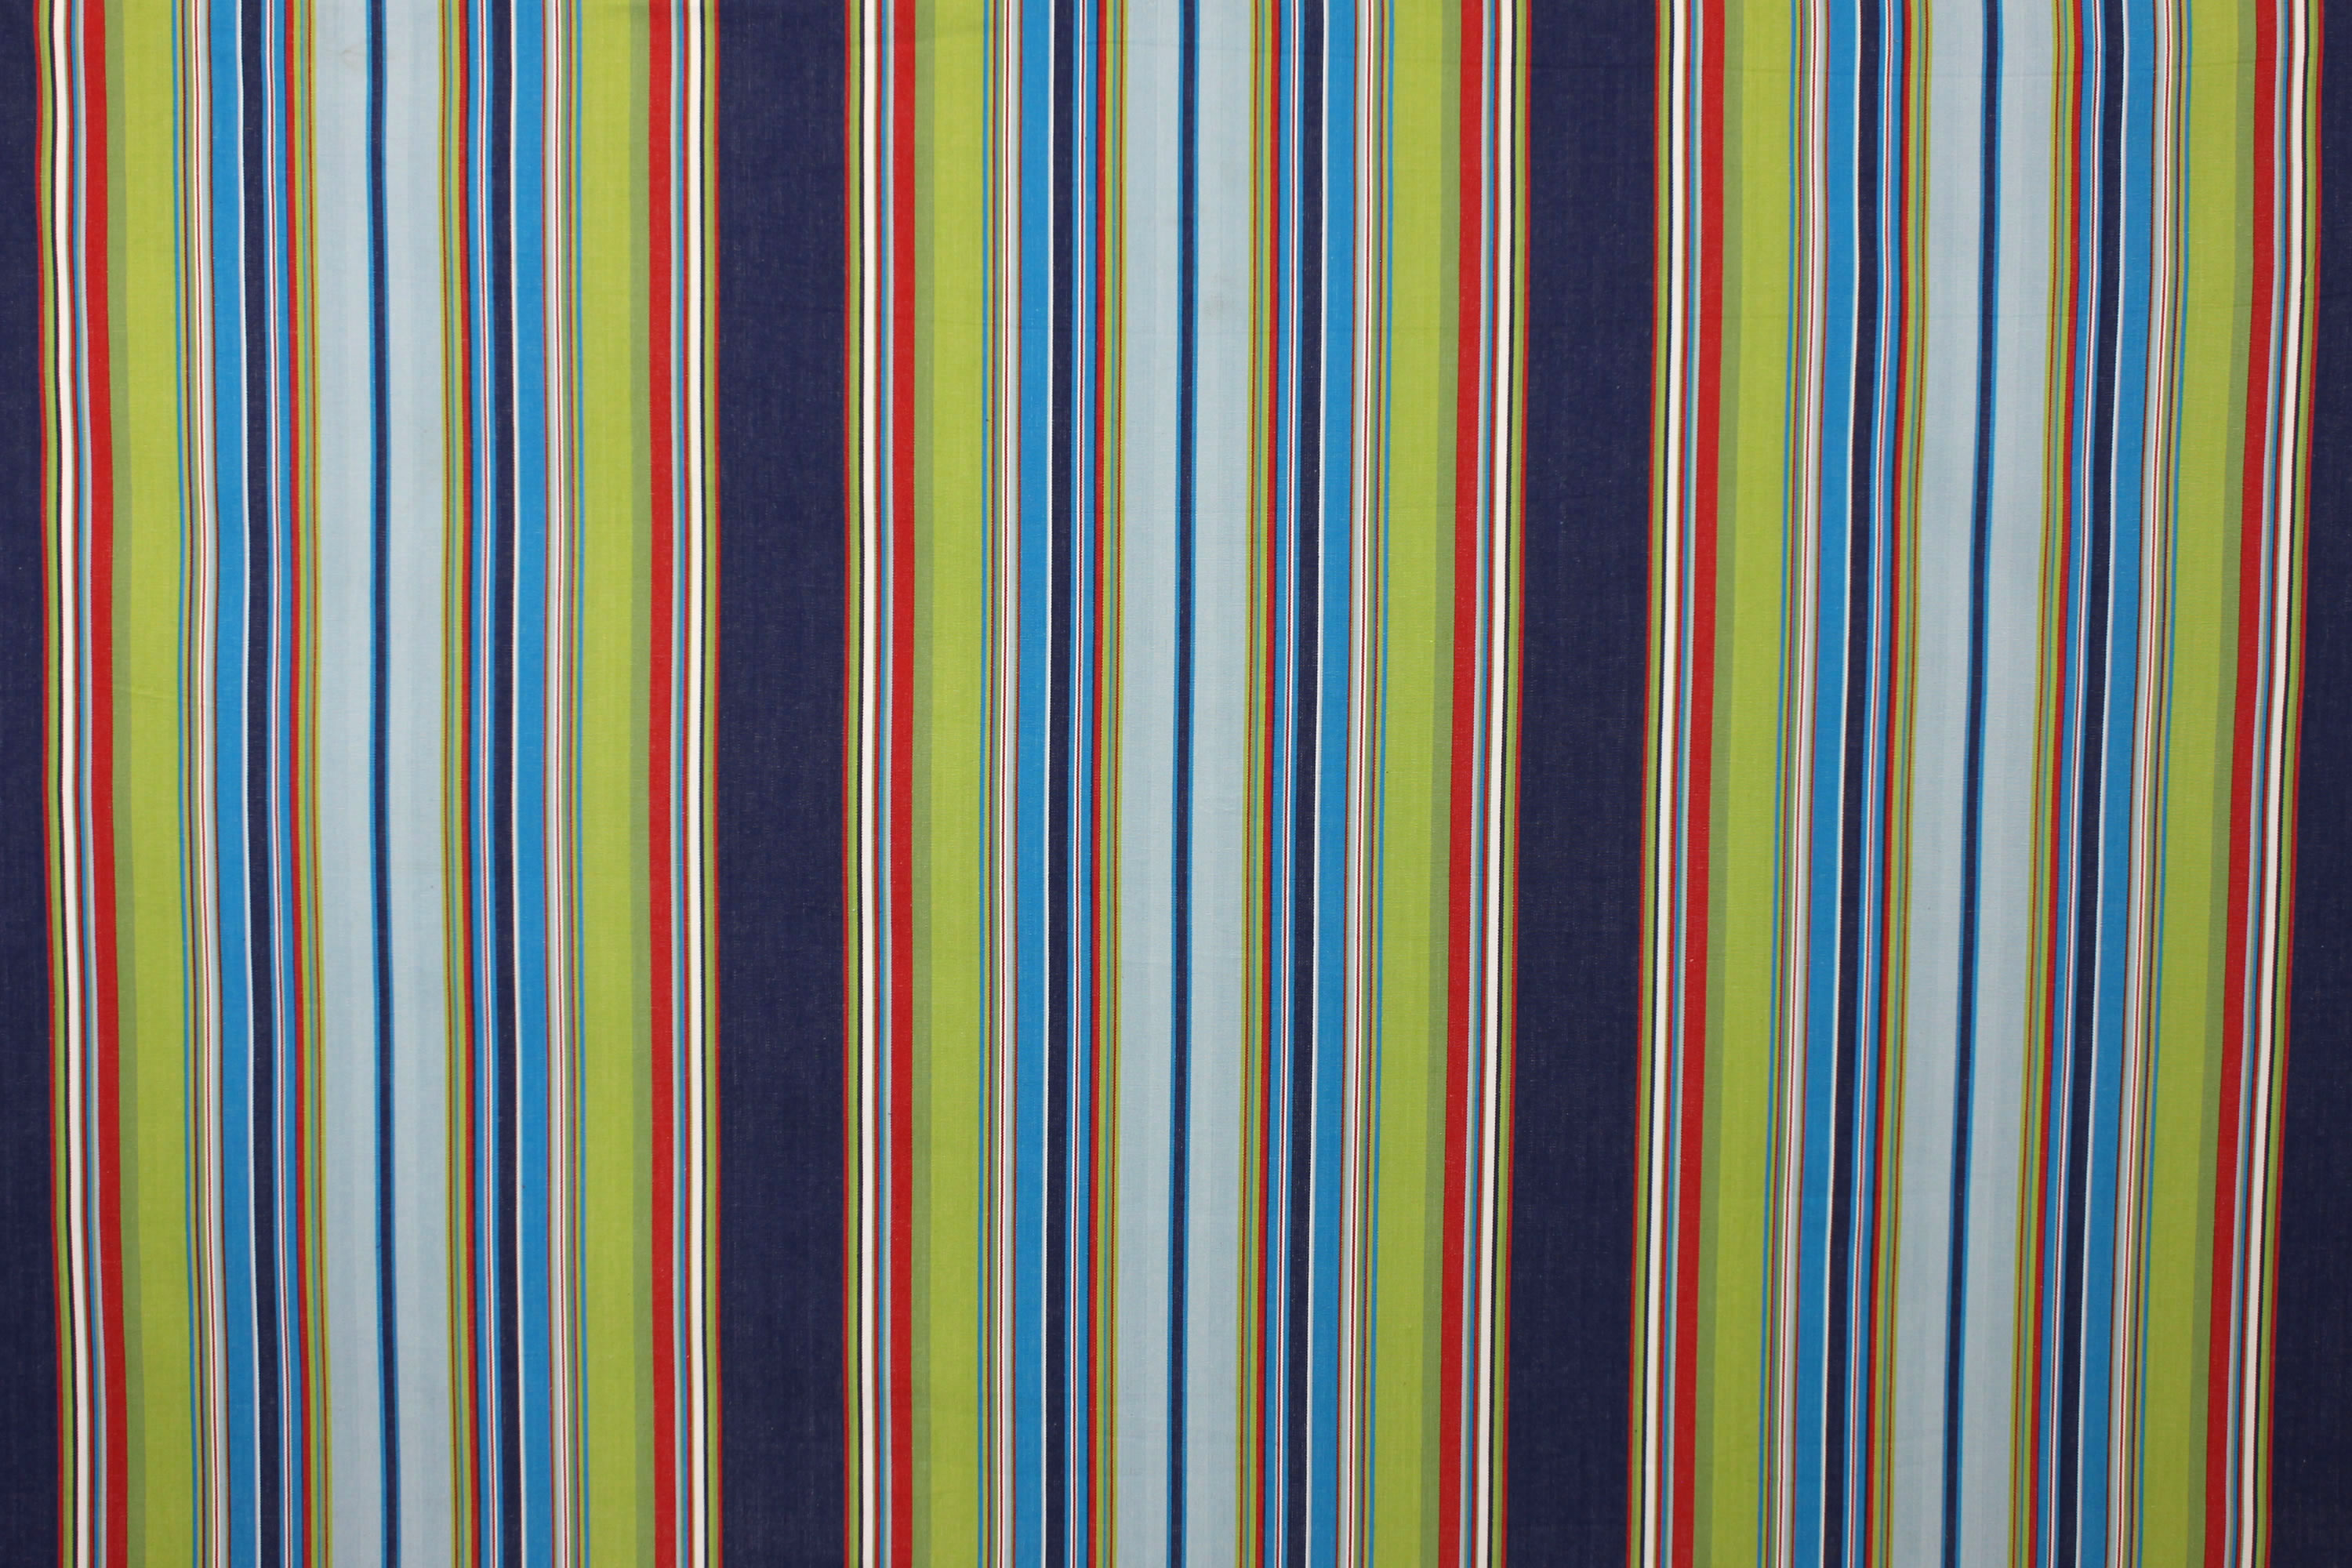 Navy Blue Striped Fabrics | Seaside Stripe Cotton Fabrics - Water Polo Stripes